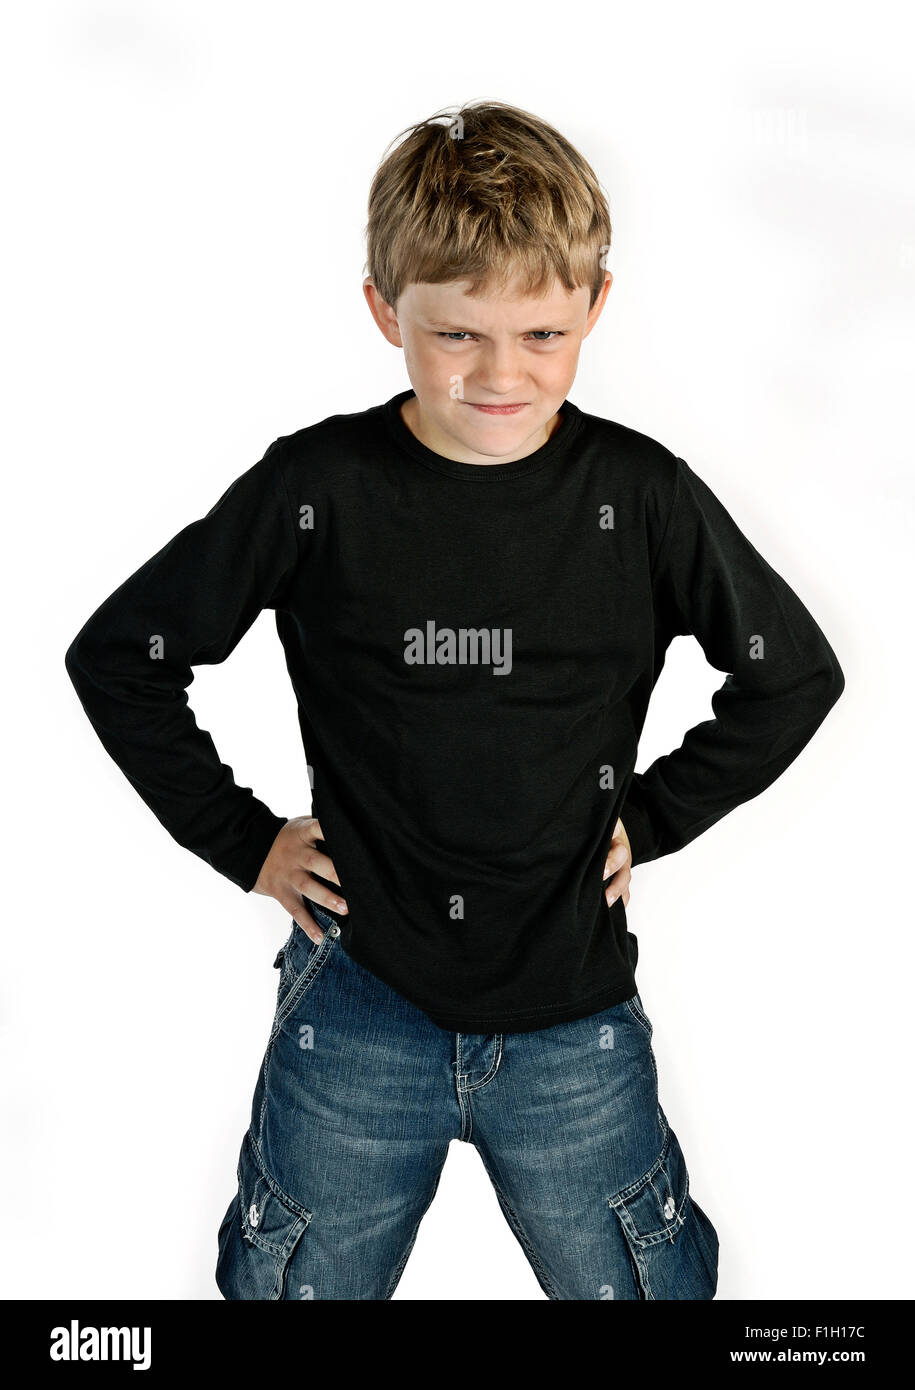 Angry little boy braces his hands on his hips. - Stock Image